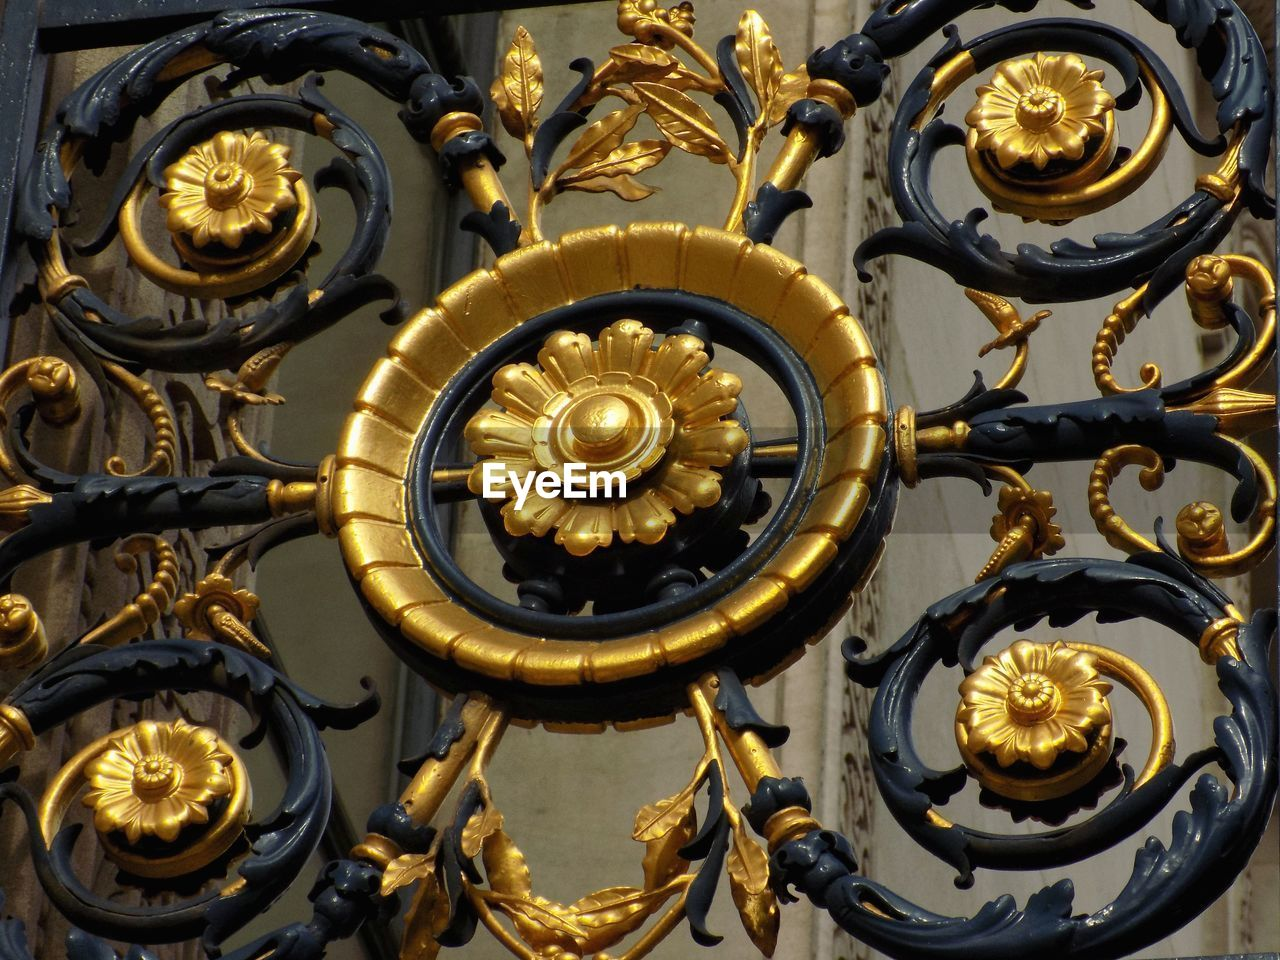 metal, gold colored, no people, close-up, design, pattern, shape, technology, indoors, art and craft, equipment, ornate, decoration, focus on foreground, day, engine, gear, full frame, geometric shape, luxury